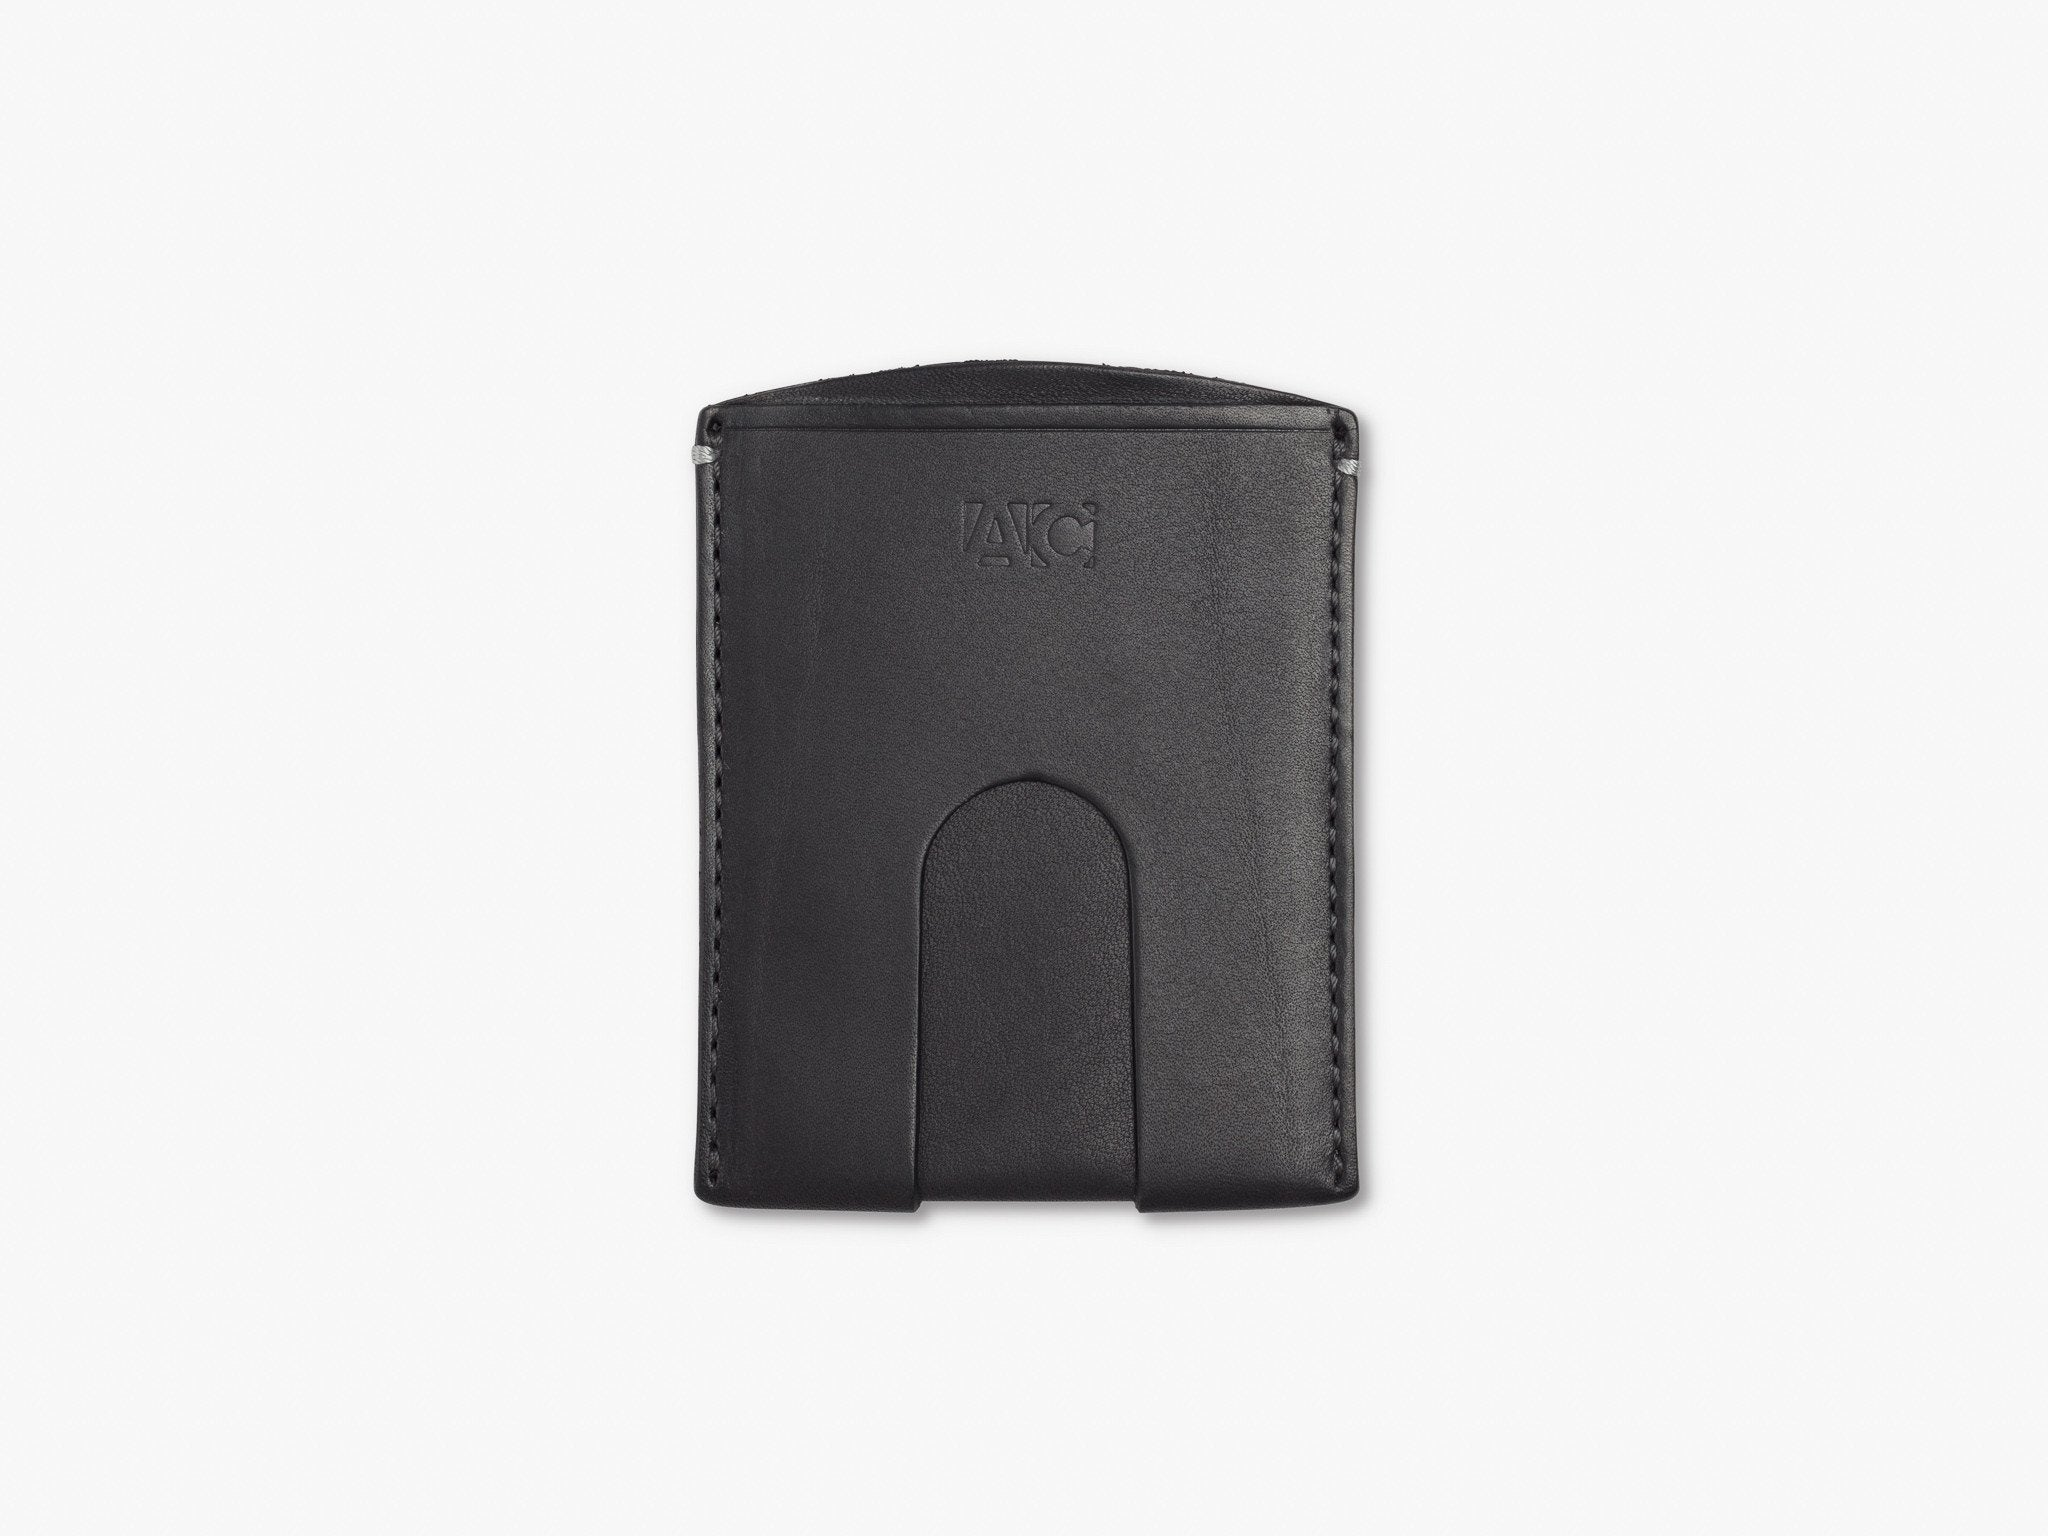 ORIGINAL CARD WALLET WALLET ANSON CALDER Black Card Non-RFID _black